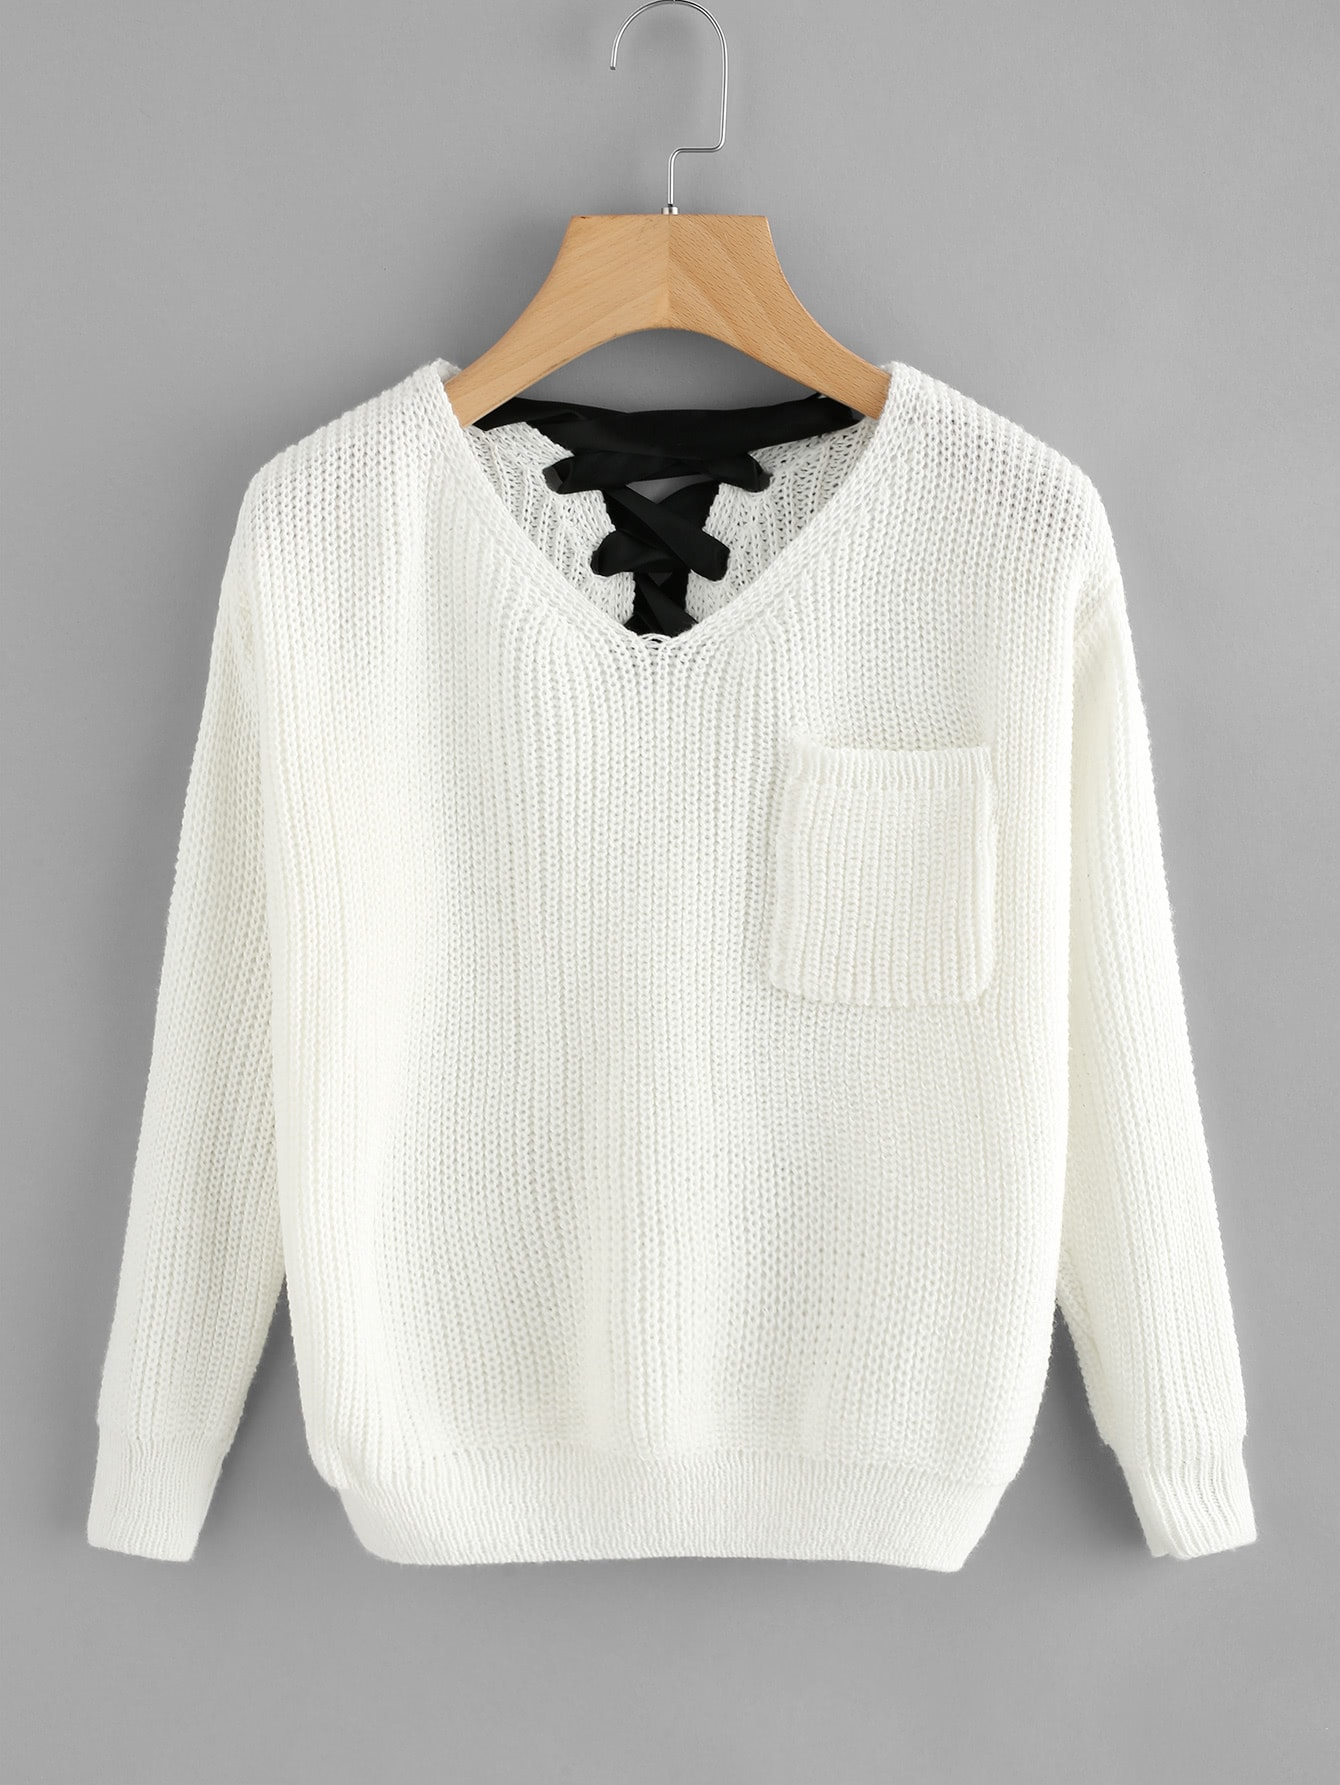 V Neckline Lace Up Back Texture Knit Sweater lace up sleeve waffle knit sweater